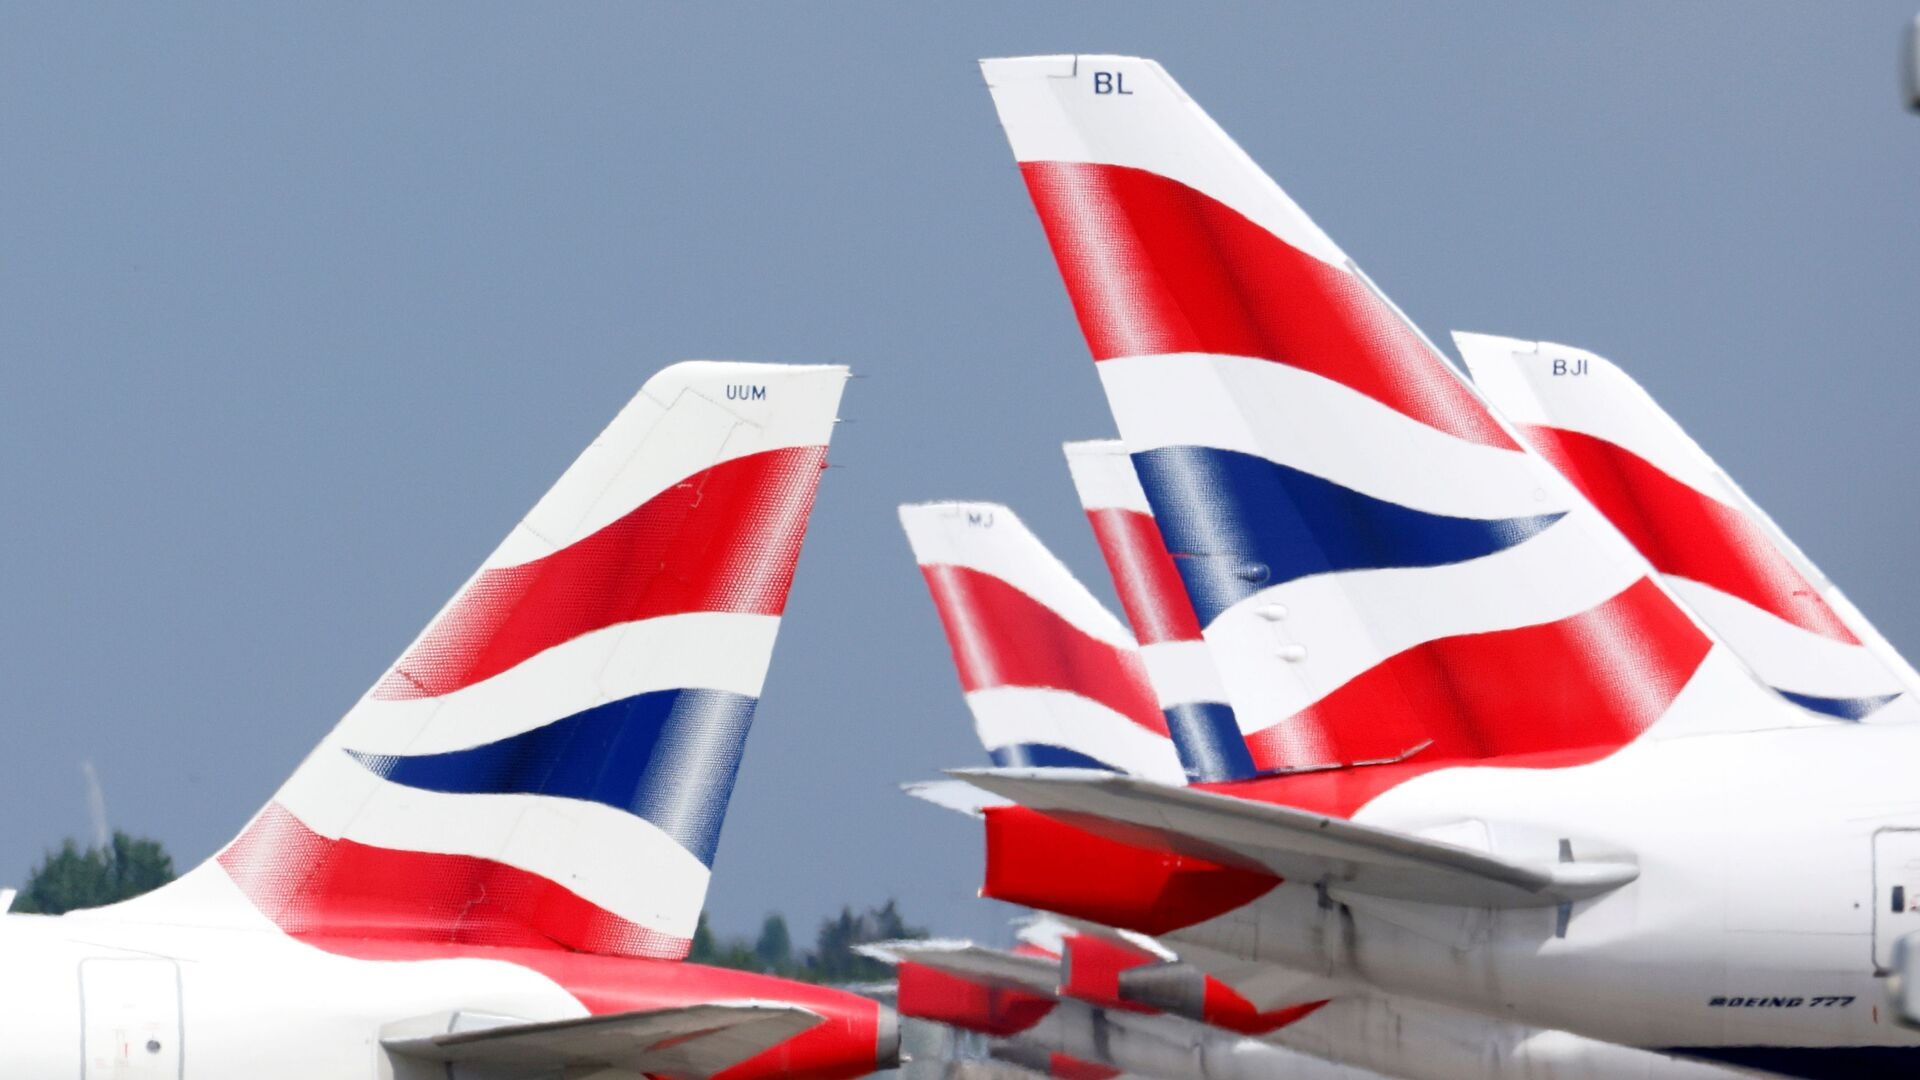 British Airways tail fins are pictured at Heathrow Airport in London, Britain, 17 May 2021 - Sputnik International, 1920, 18.06.2021